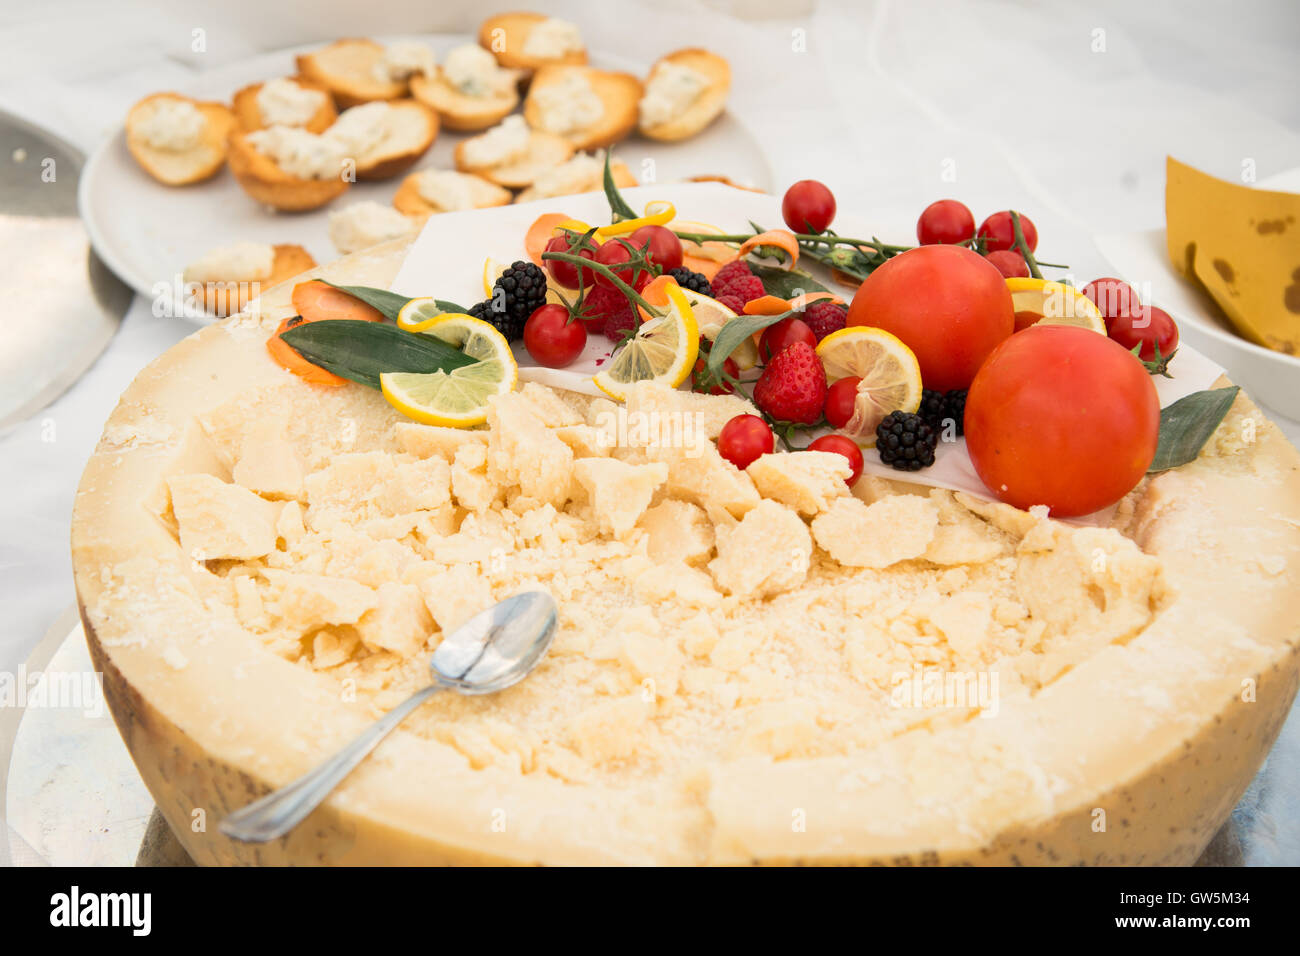 Food on a dish served during a buffet catering party - Stock Image